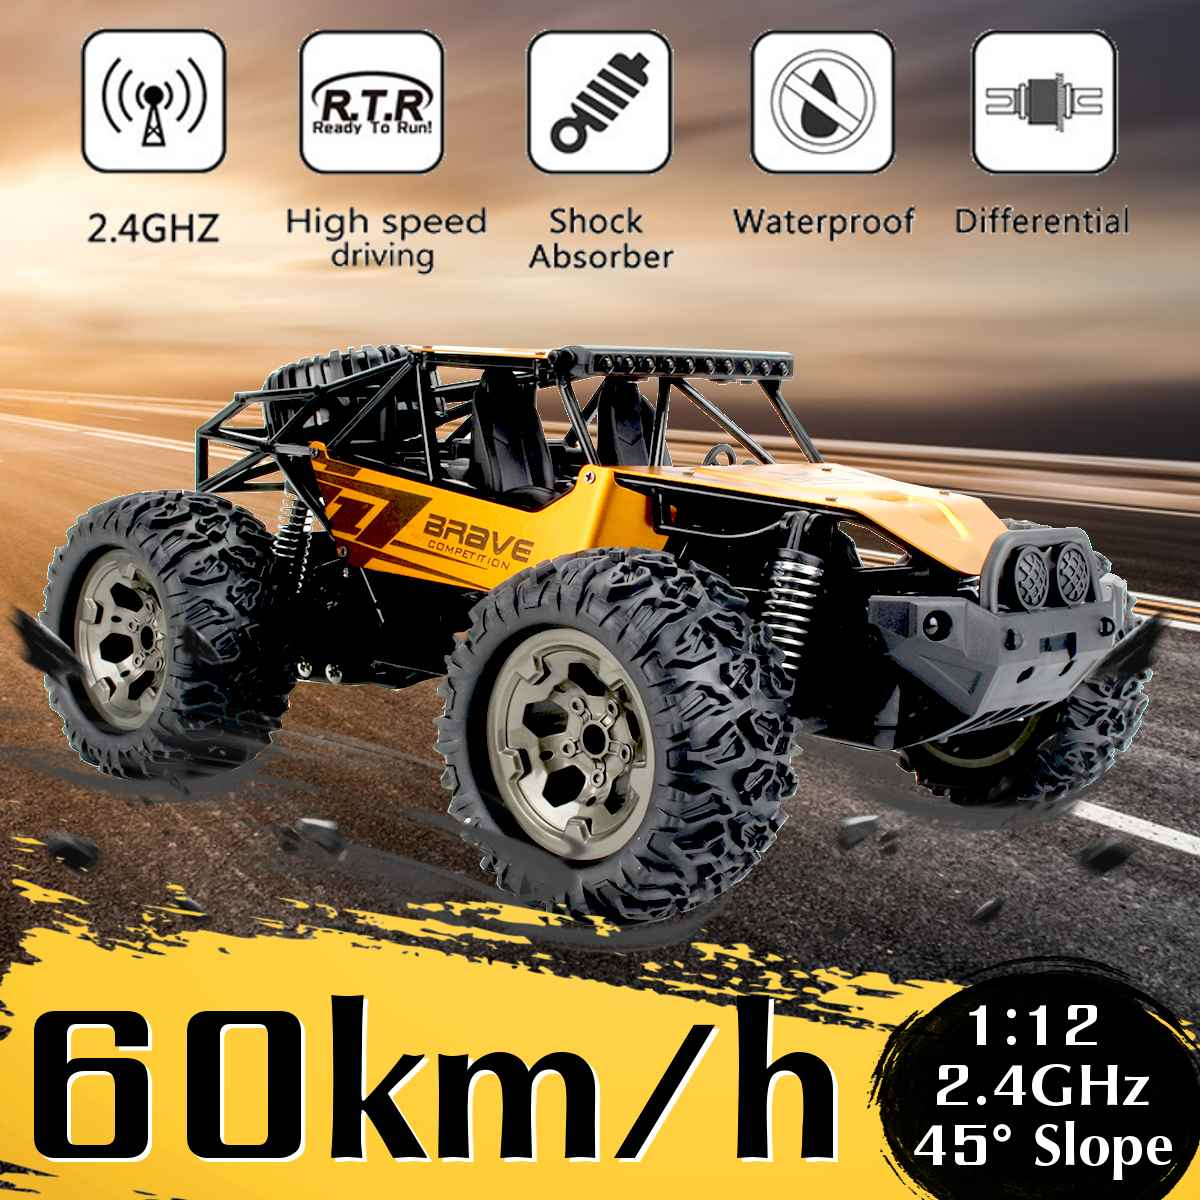 1:12 60Km/h RC Remote Control Off Road Cars Vehicle 2.4Ghz Crawlers Electric Monster RC car Toy for Children Gift